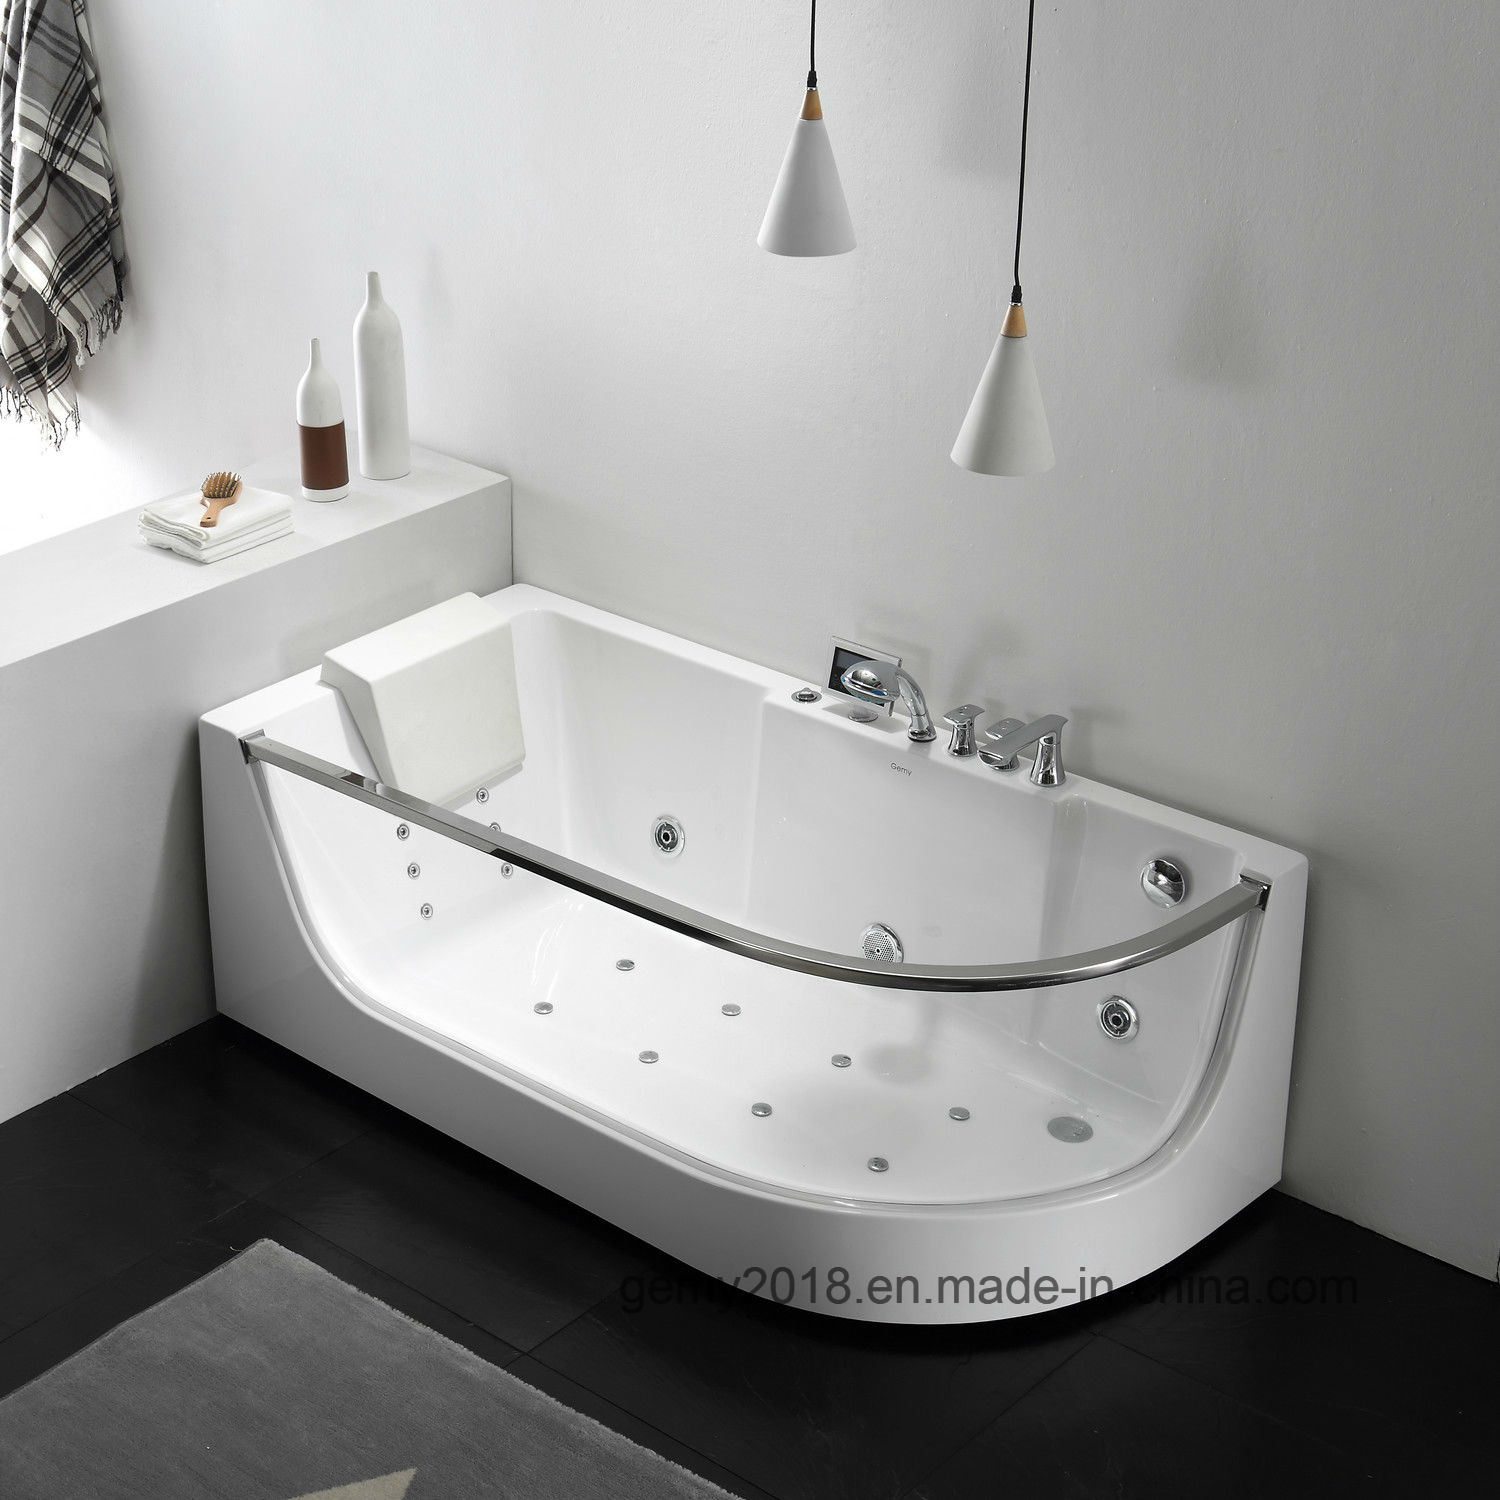 sweeten white purple floor on interior up the wooden bathroom your carving bath black plus bathtubs with legs inside freestanding exciting small bathtub